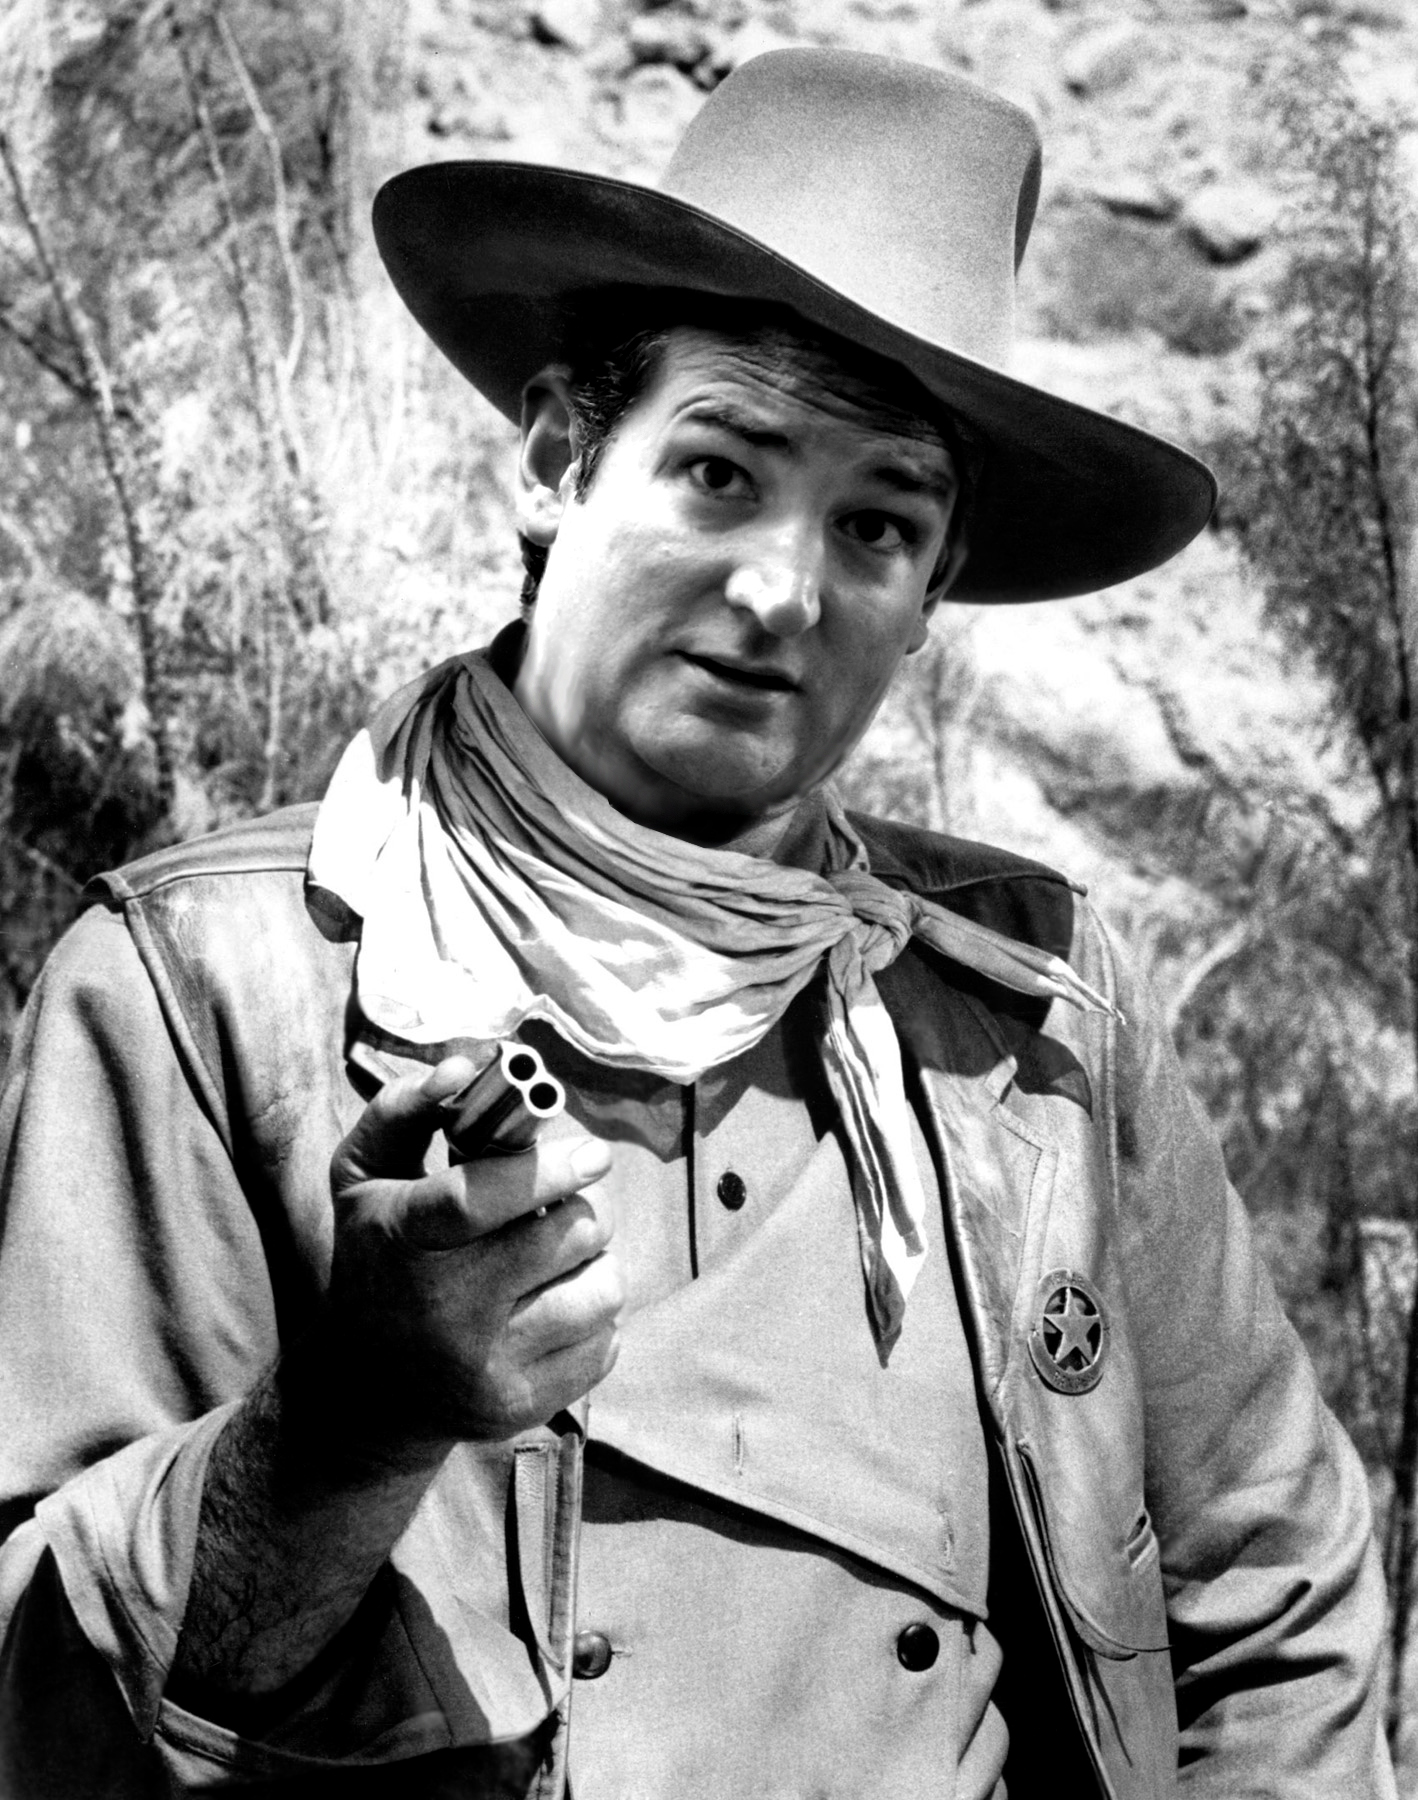 Cruz as the Duke